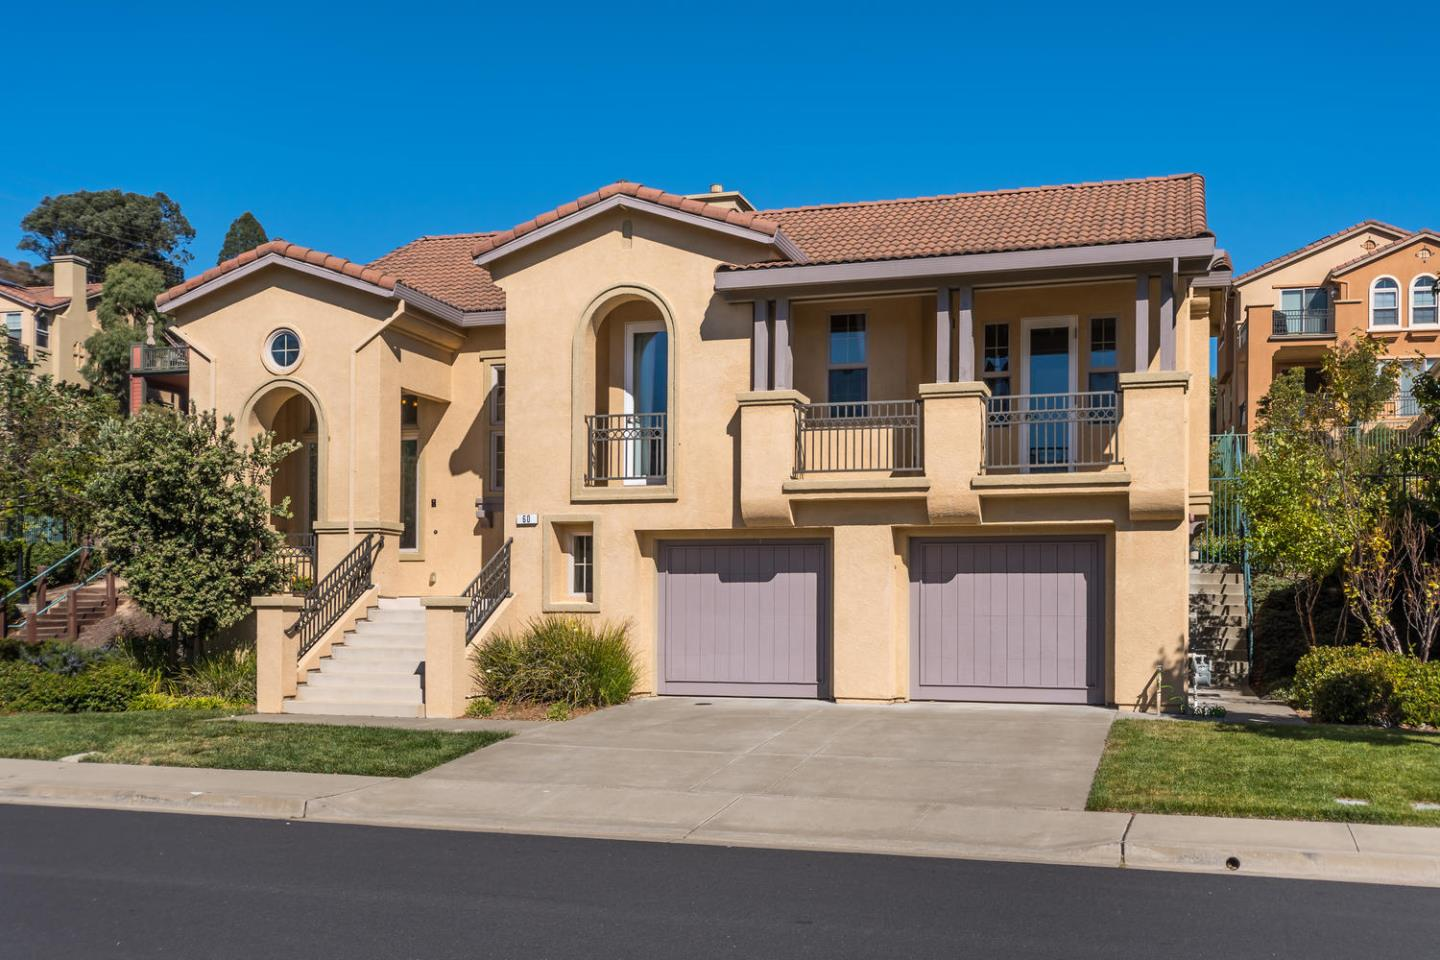 Single Family Home for Sale at 60 Golden Aster Court Brisbane, California 94005 United States